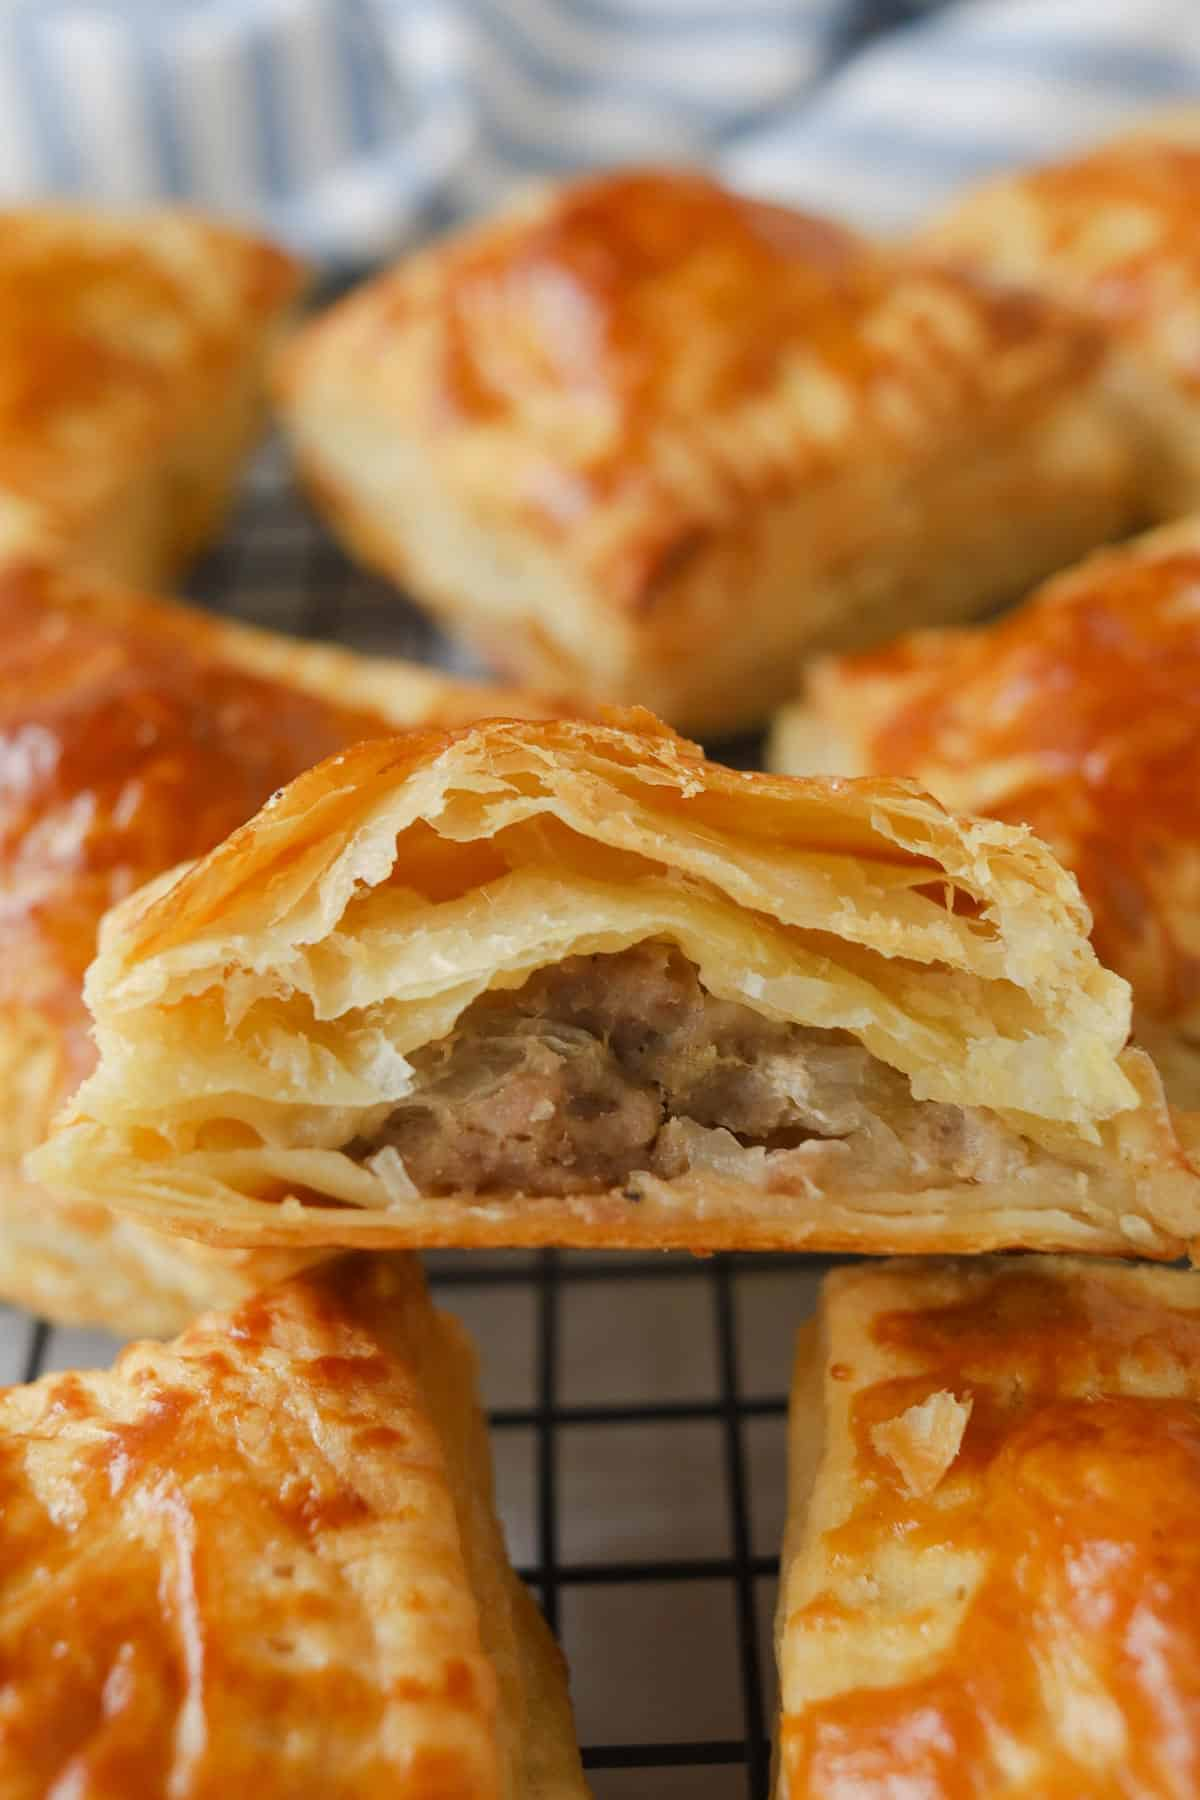 Closeup of puff pastry cut in half with meat inside